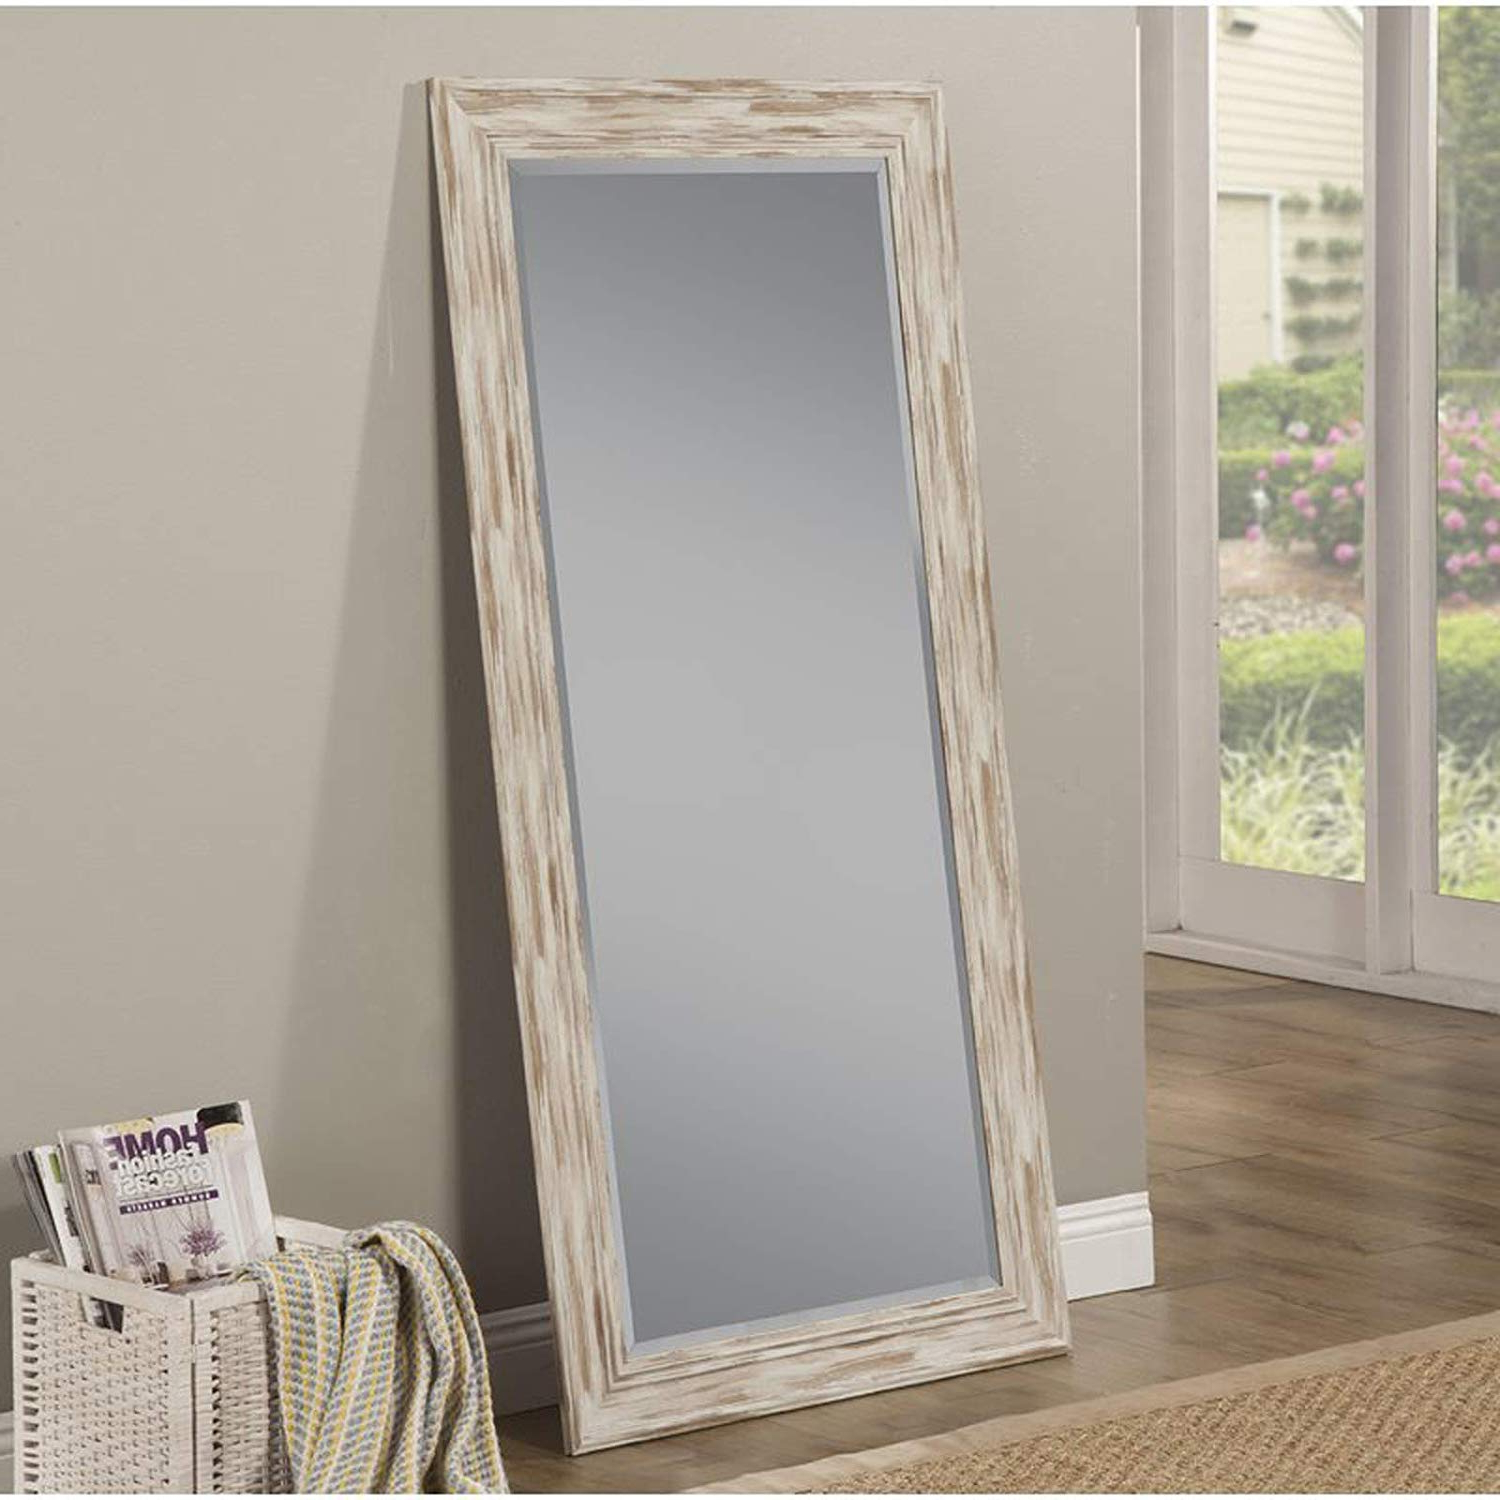 Recent Full Length Wall Mirror – Rustic Rectangular Shape Horizontal & Vertical  Mirror – Can Be Use In Living Room, Bedroom, Entryway Or Bathroom (Antique Throughout Horizontal Wall Mirrors (View 16 of 20)